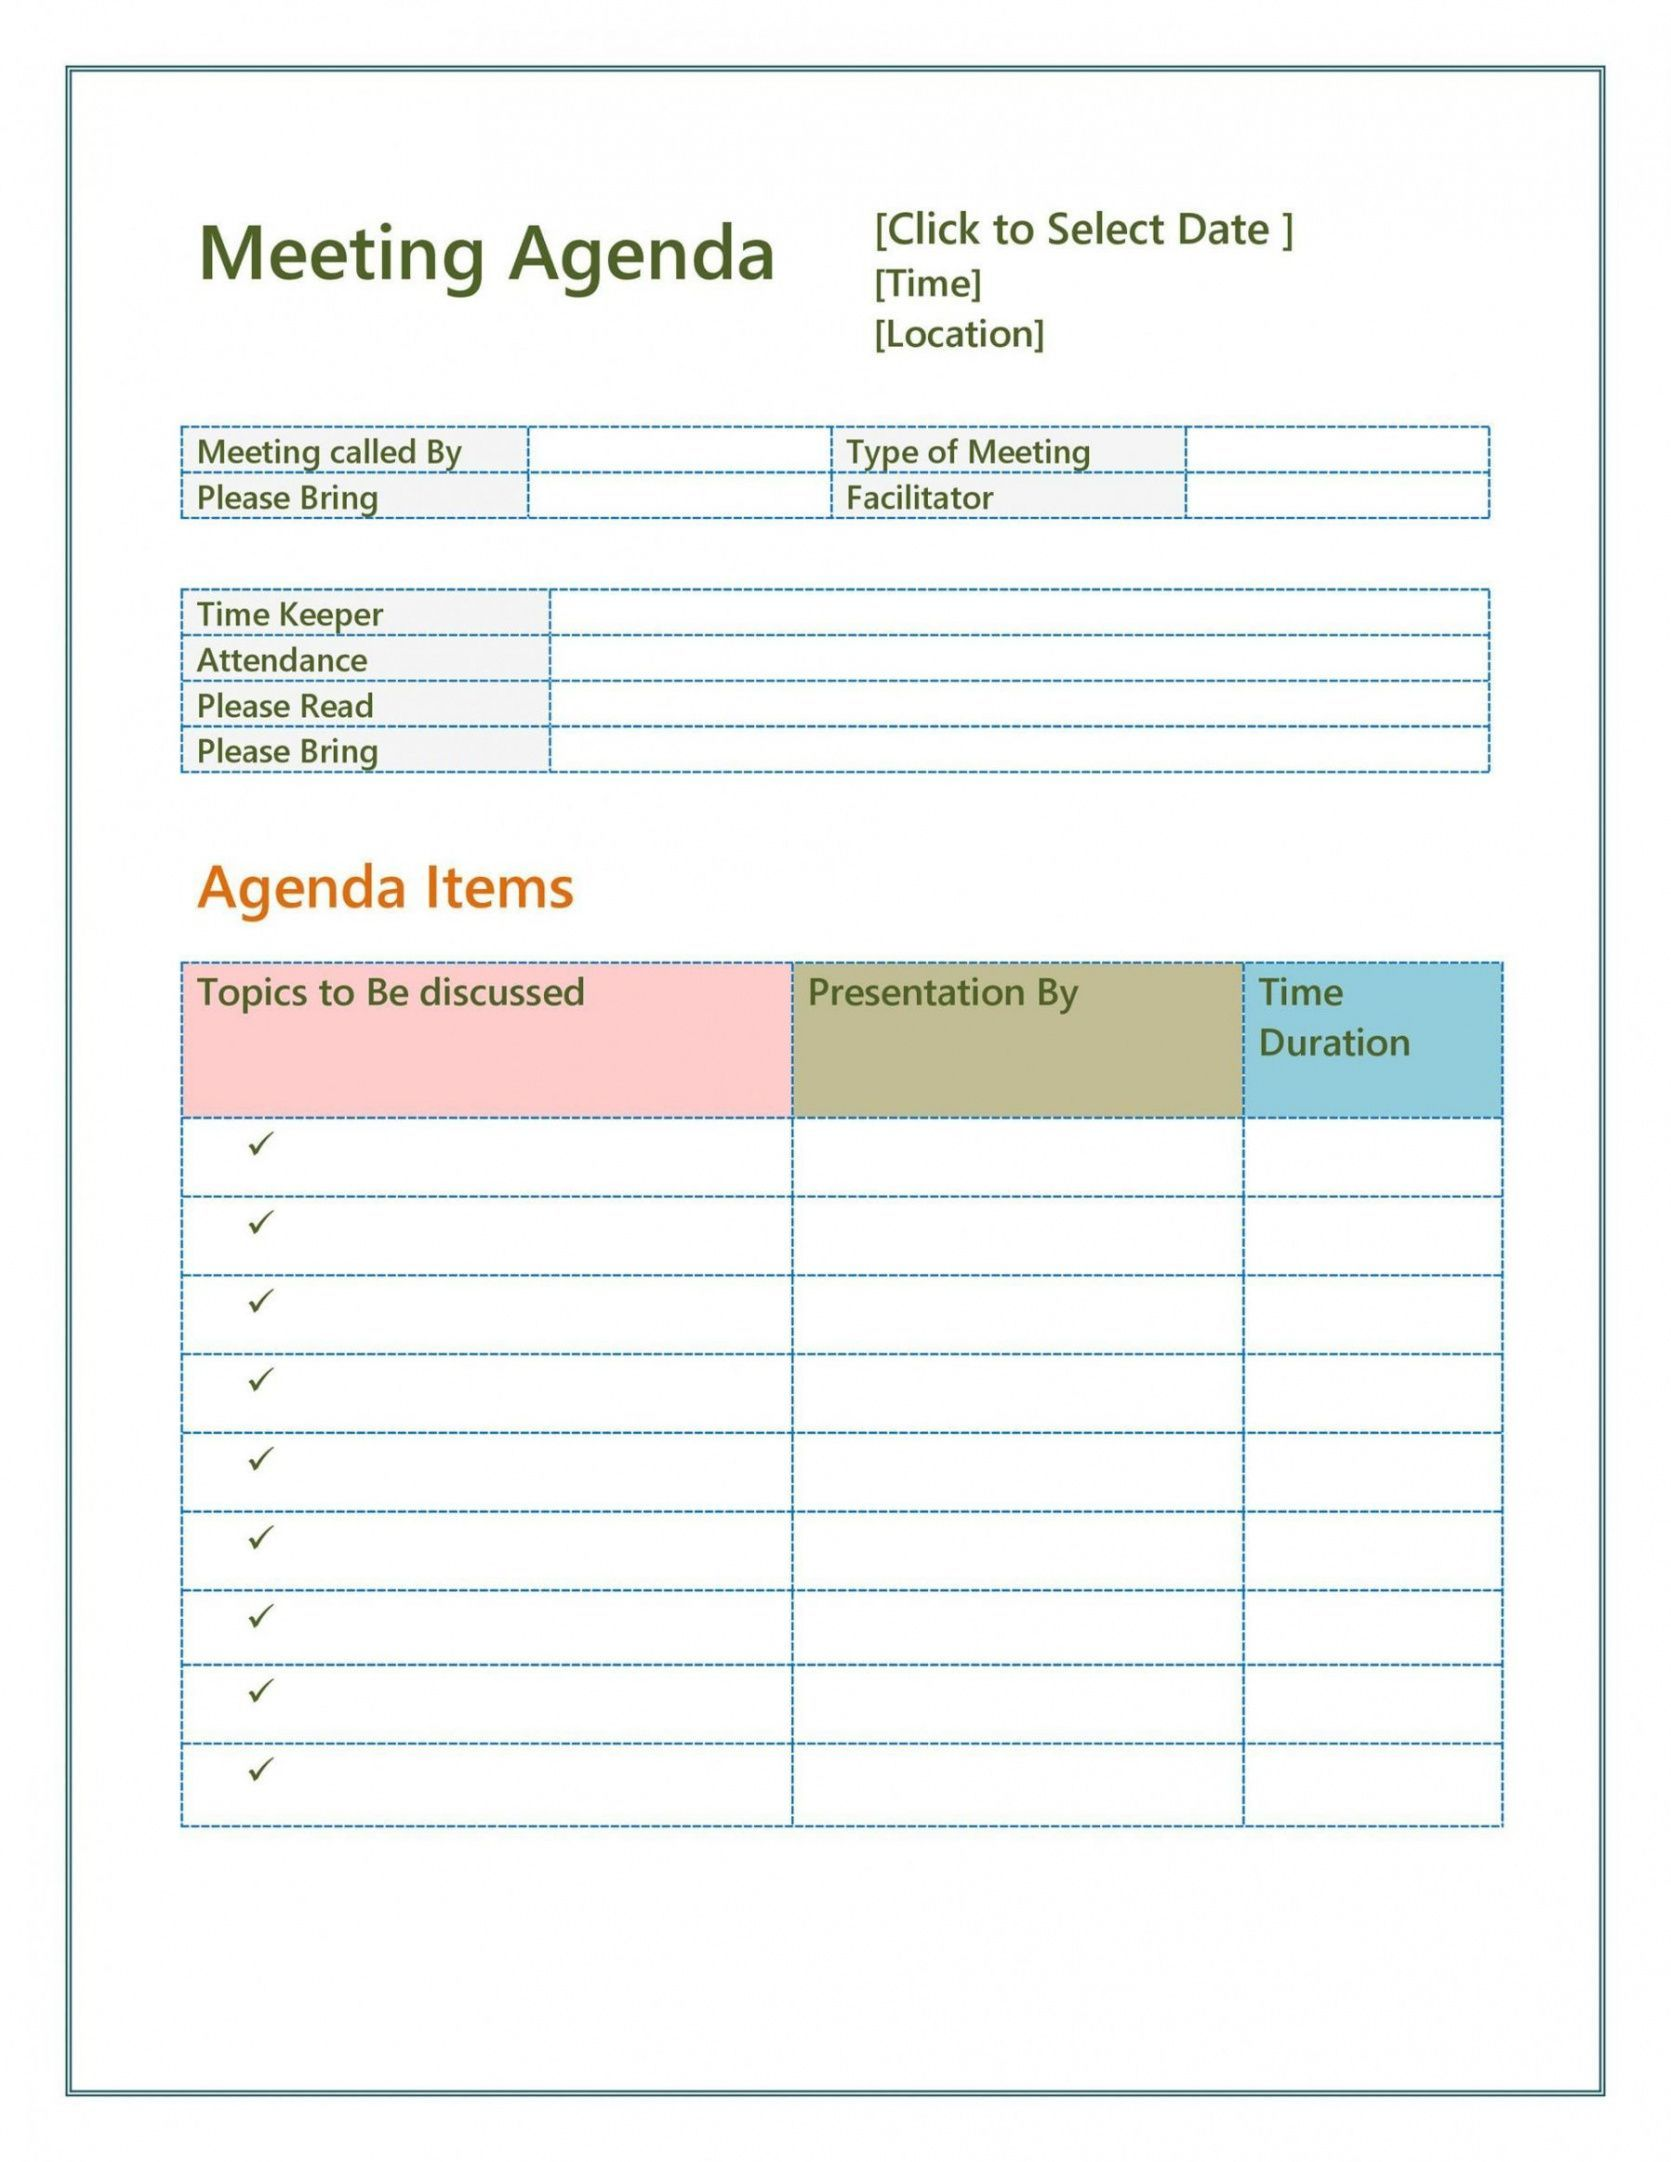 Meeting Agenda Template Word Free Agenda For A Meeting